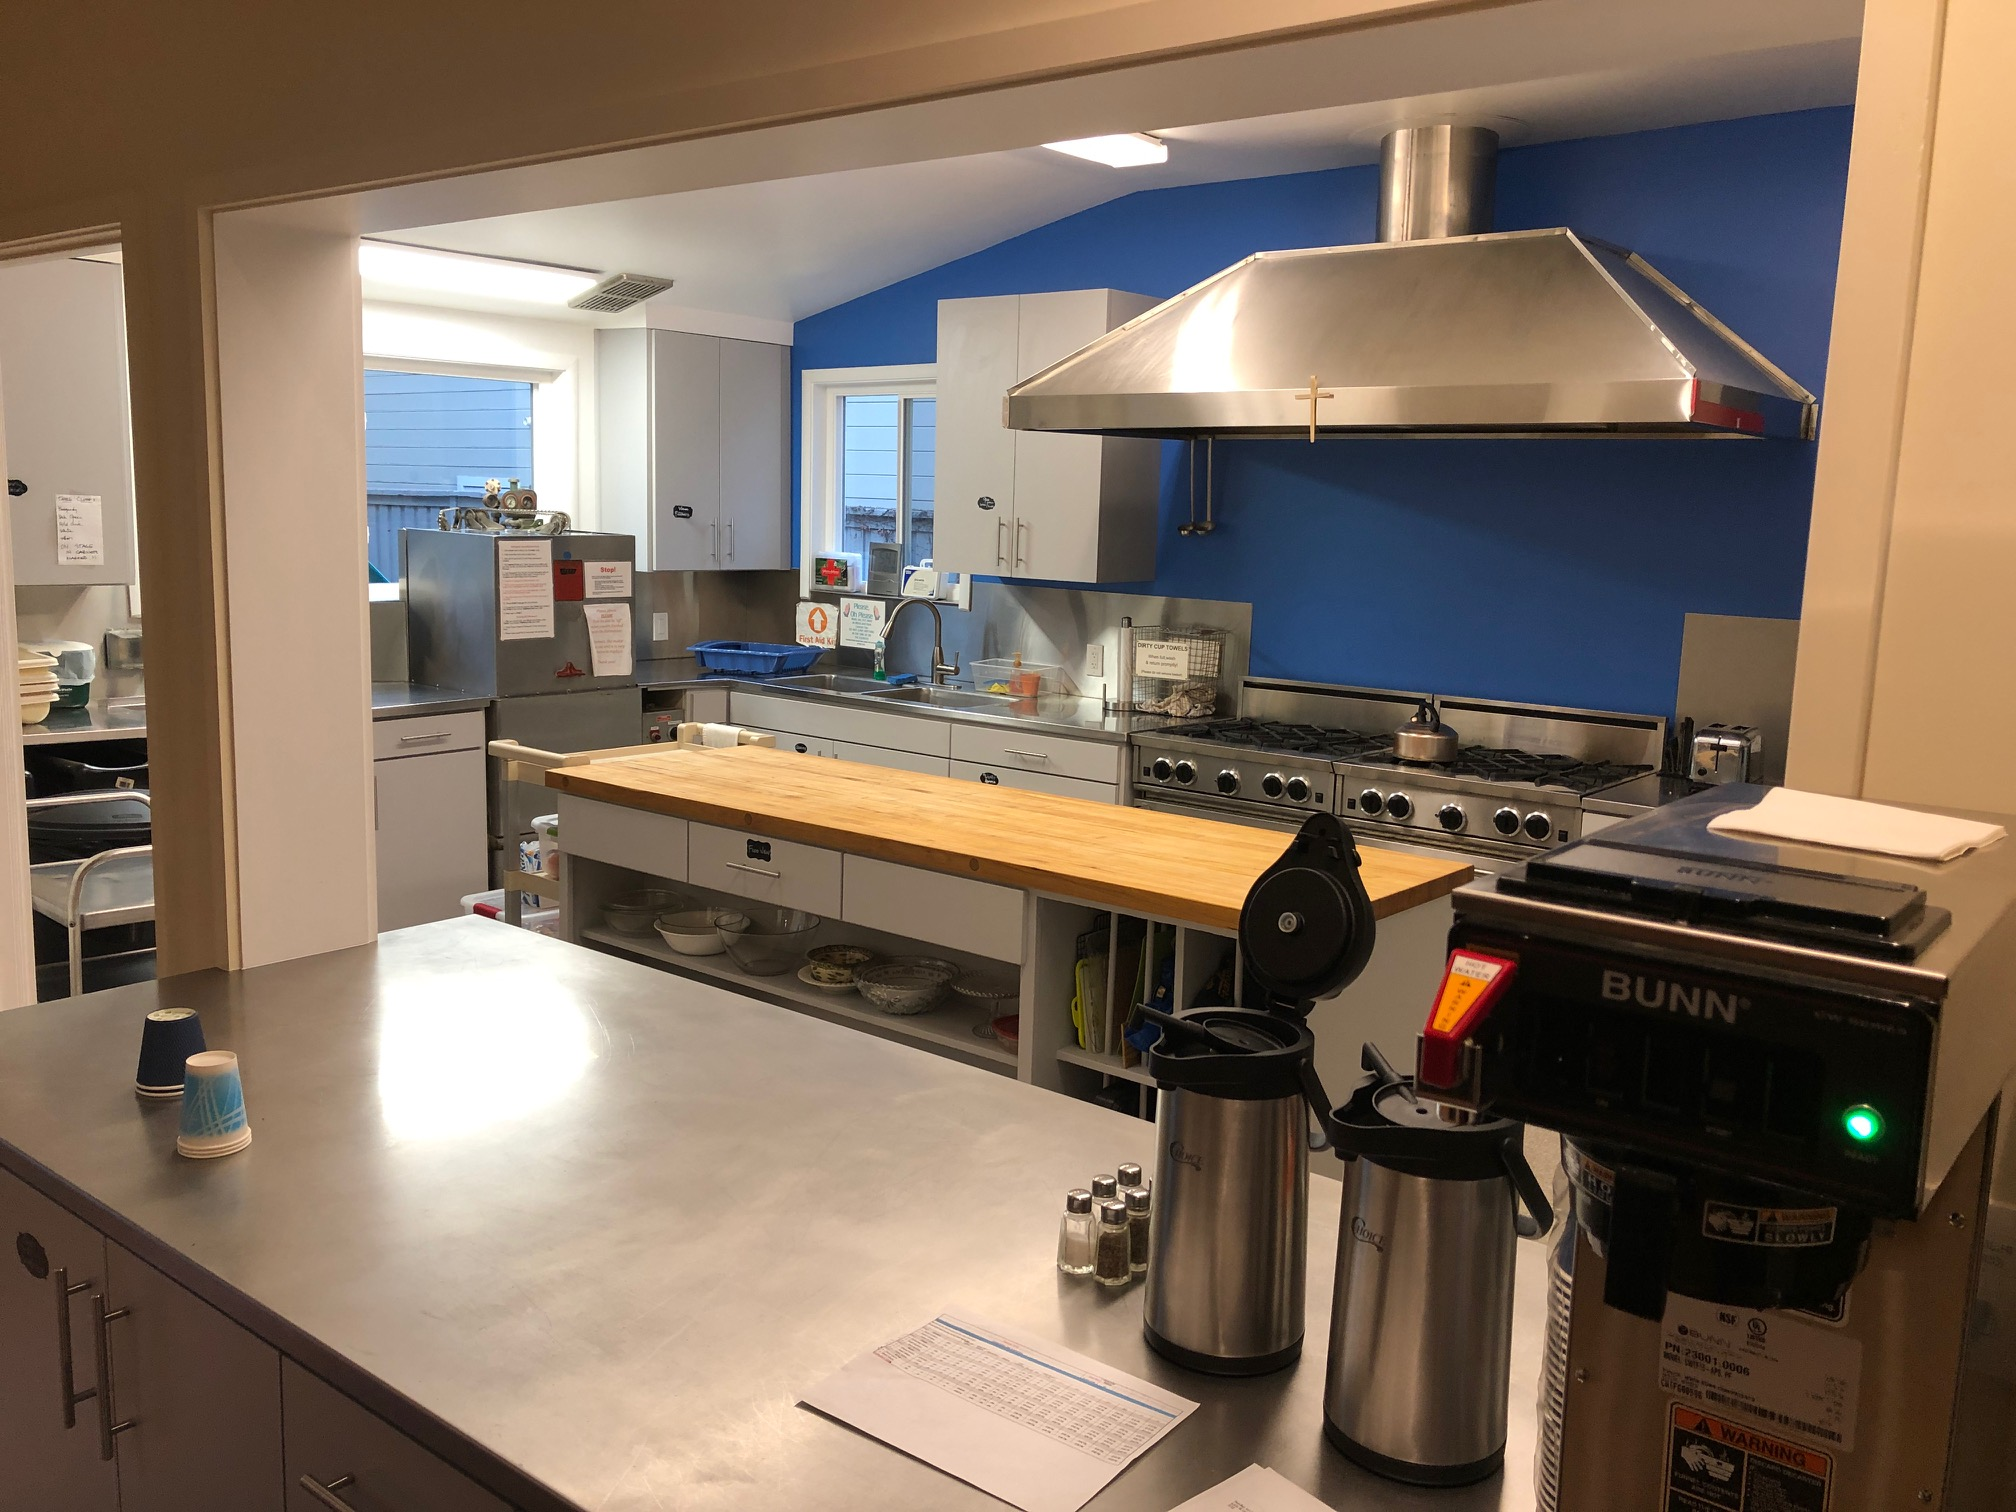 Our recently-remodeled kitchen with dual stoves is available for meal preparation for events or a base for event catering.